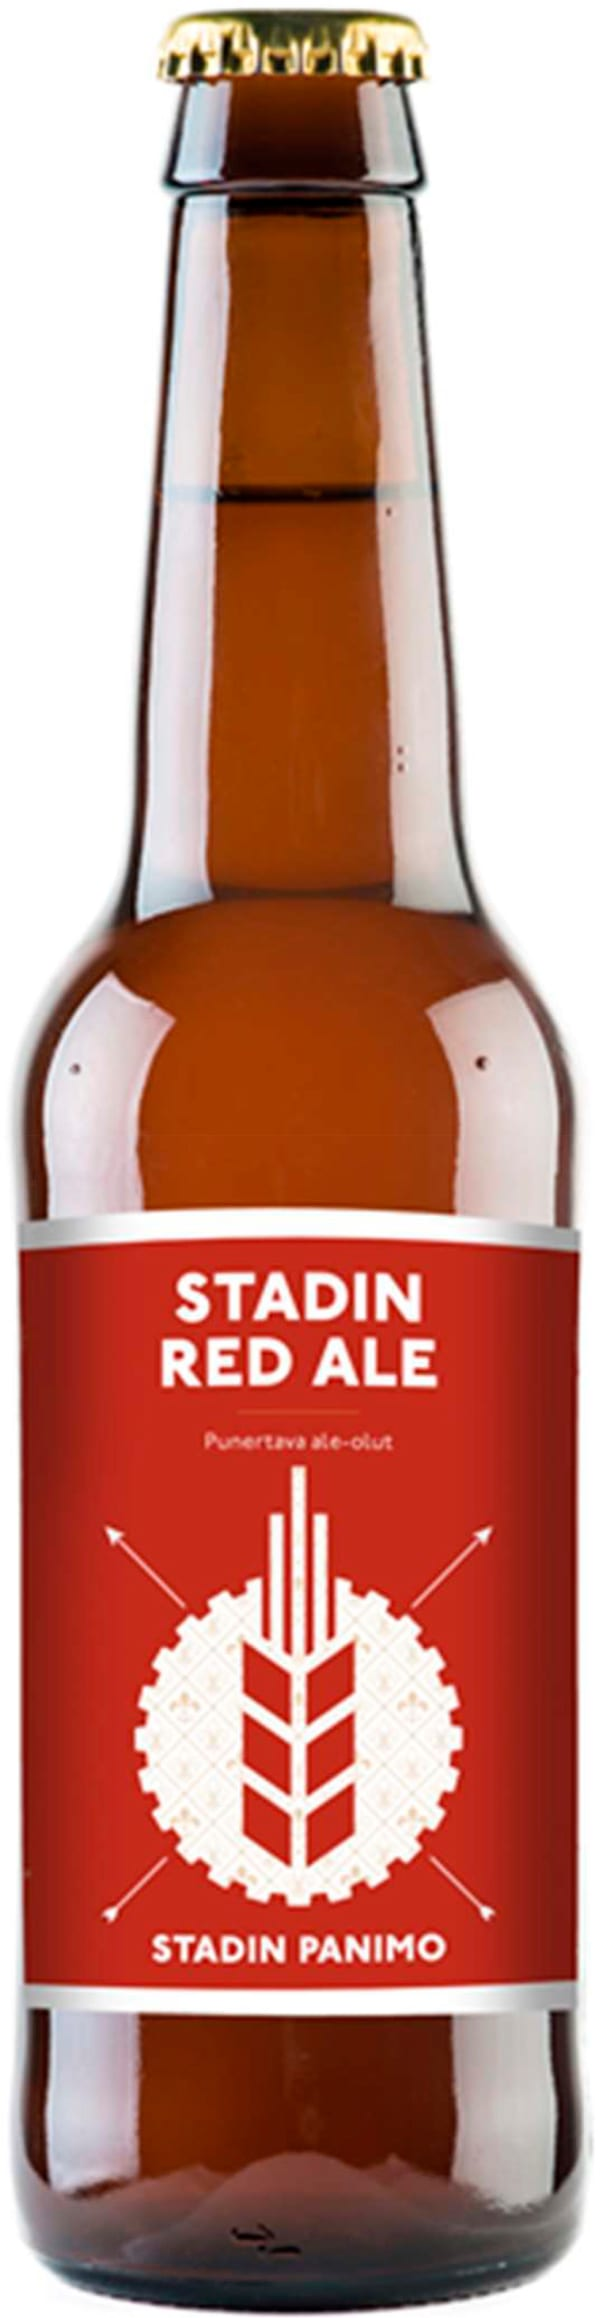 Stadin Red Ale